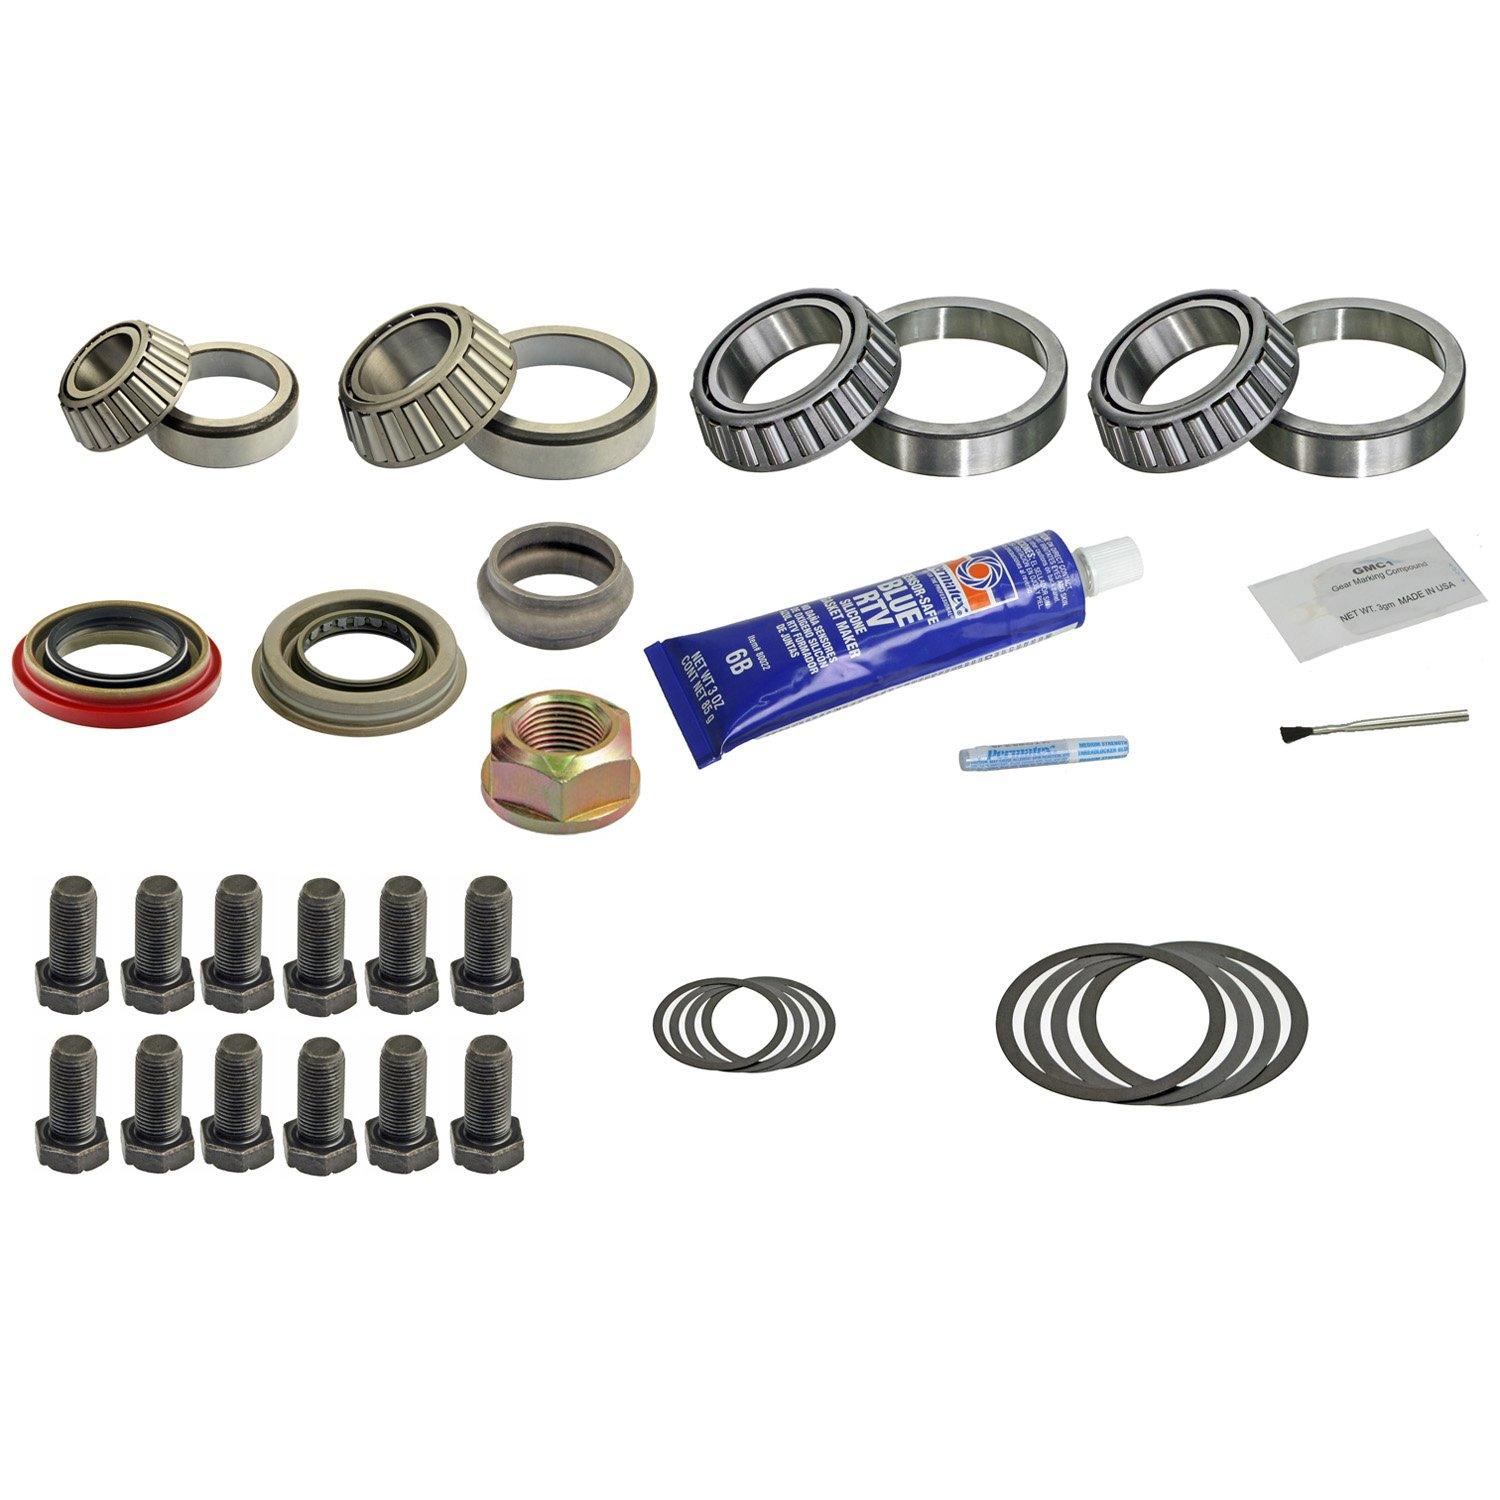 DRK331AMK Dana 60 Front Timken Master Diff Bearing Kit Ford F250/350/450/550 99+ DT COMPONENTS